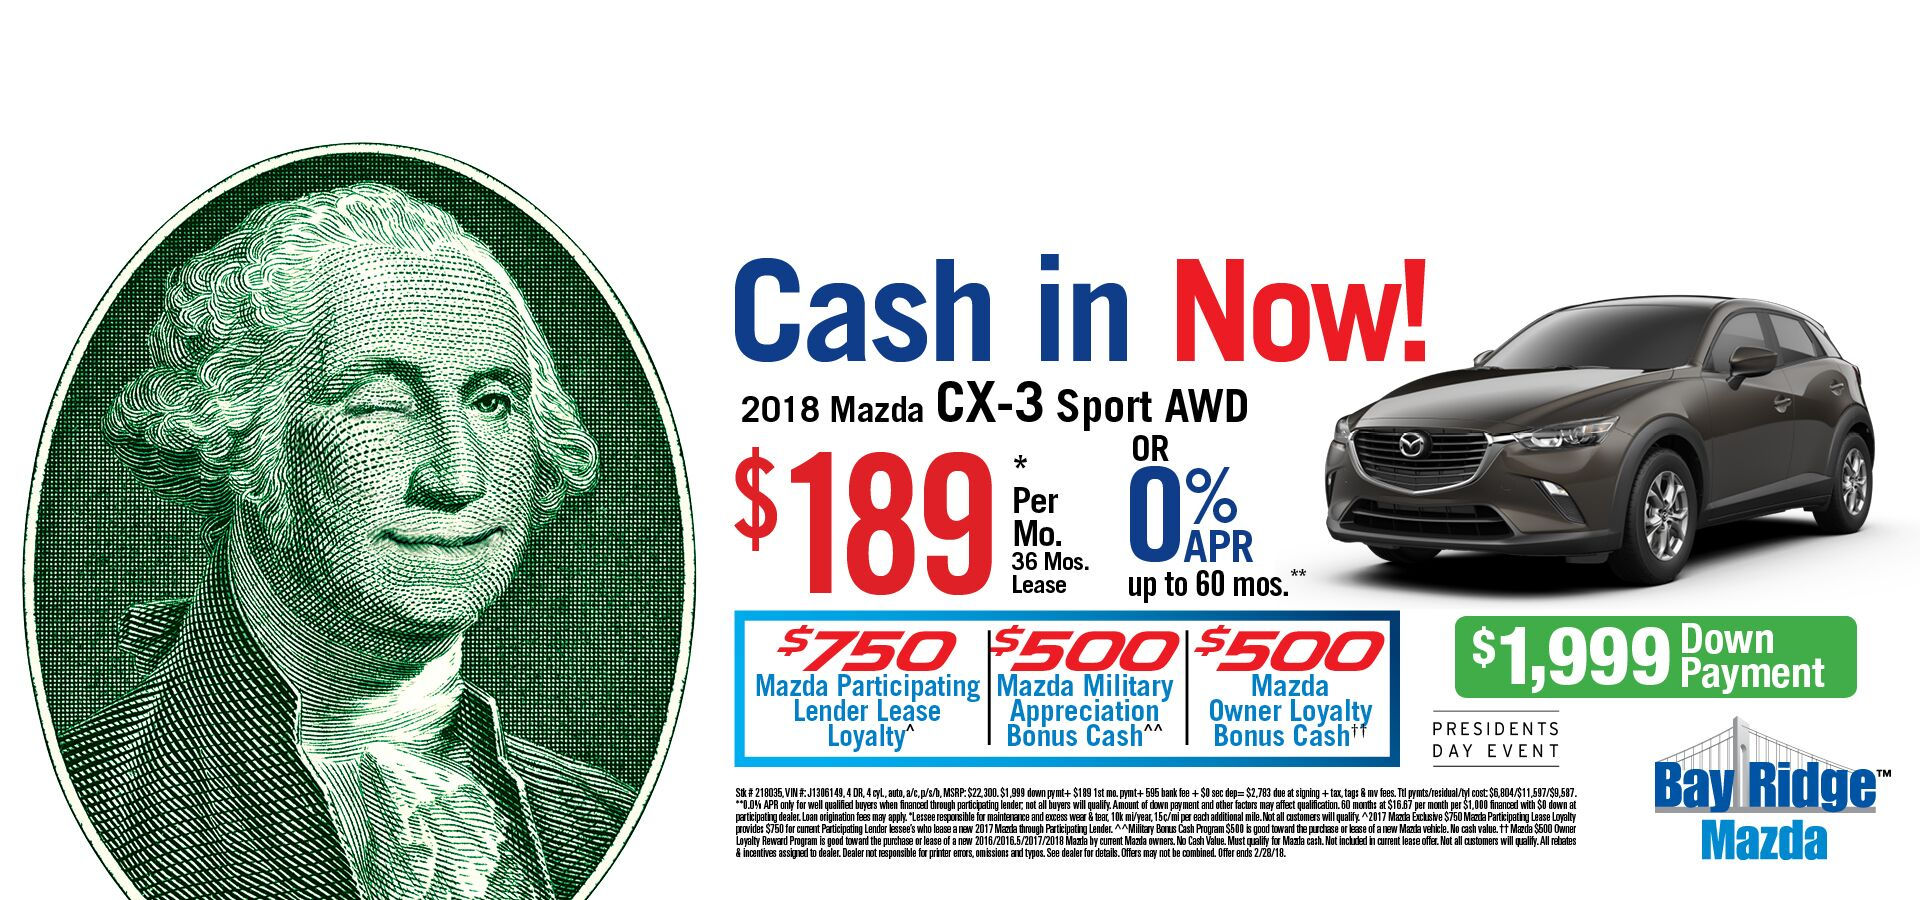 Cash In Now CX-3